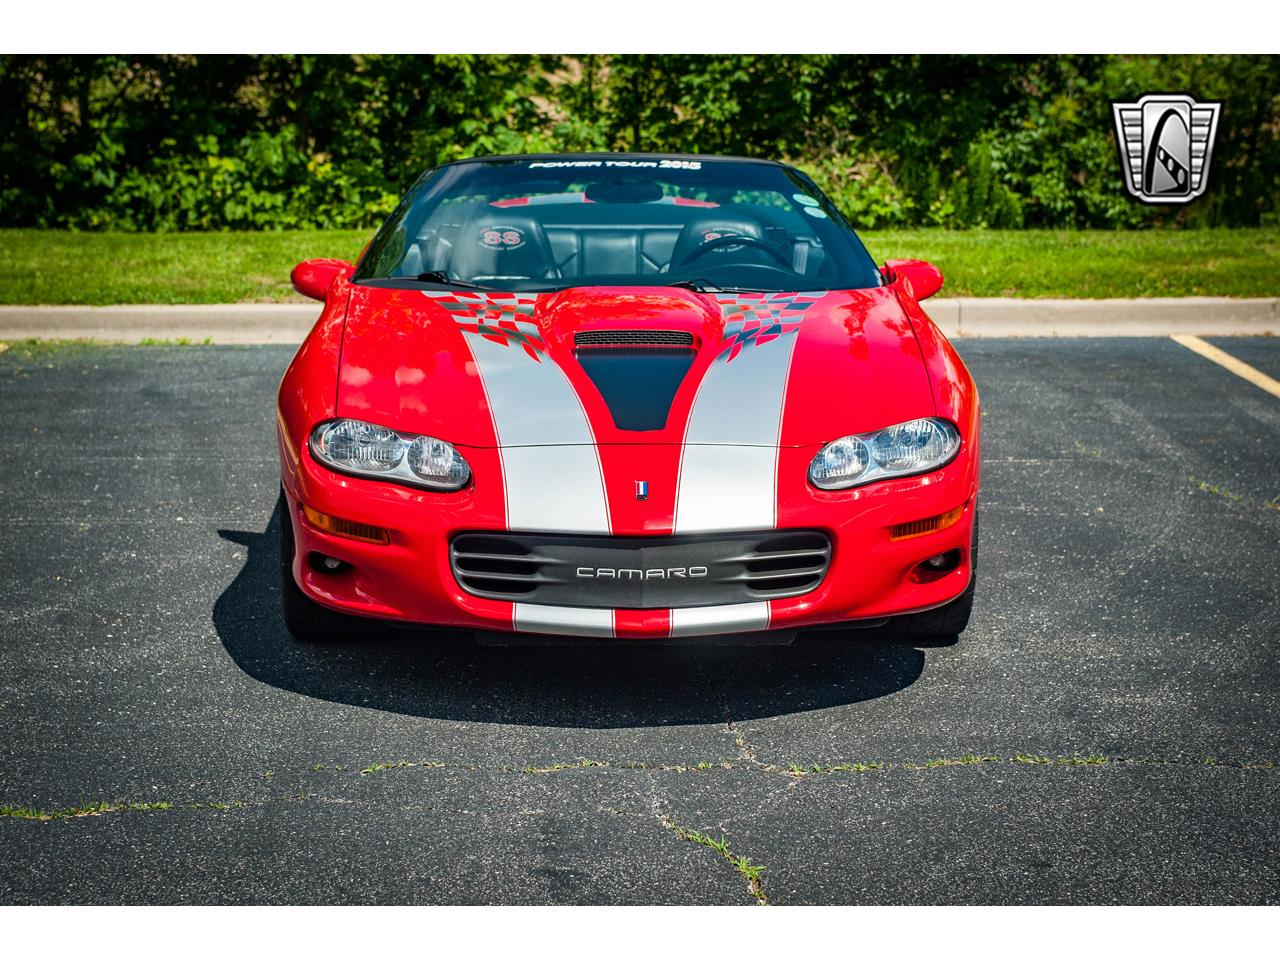 Large Picture of 2002 Camaro located in O'Fallon Illinois - $33,500.00 Offered by Gateway Classic Cars - St. Louis - QB9Z